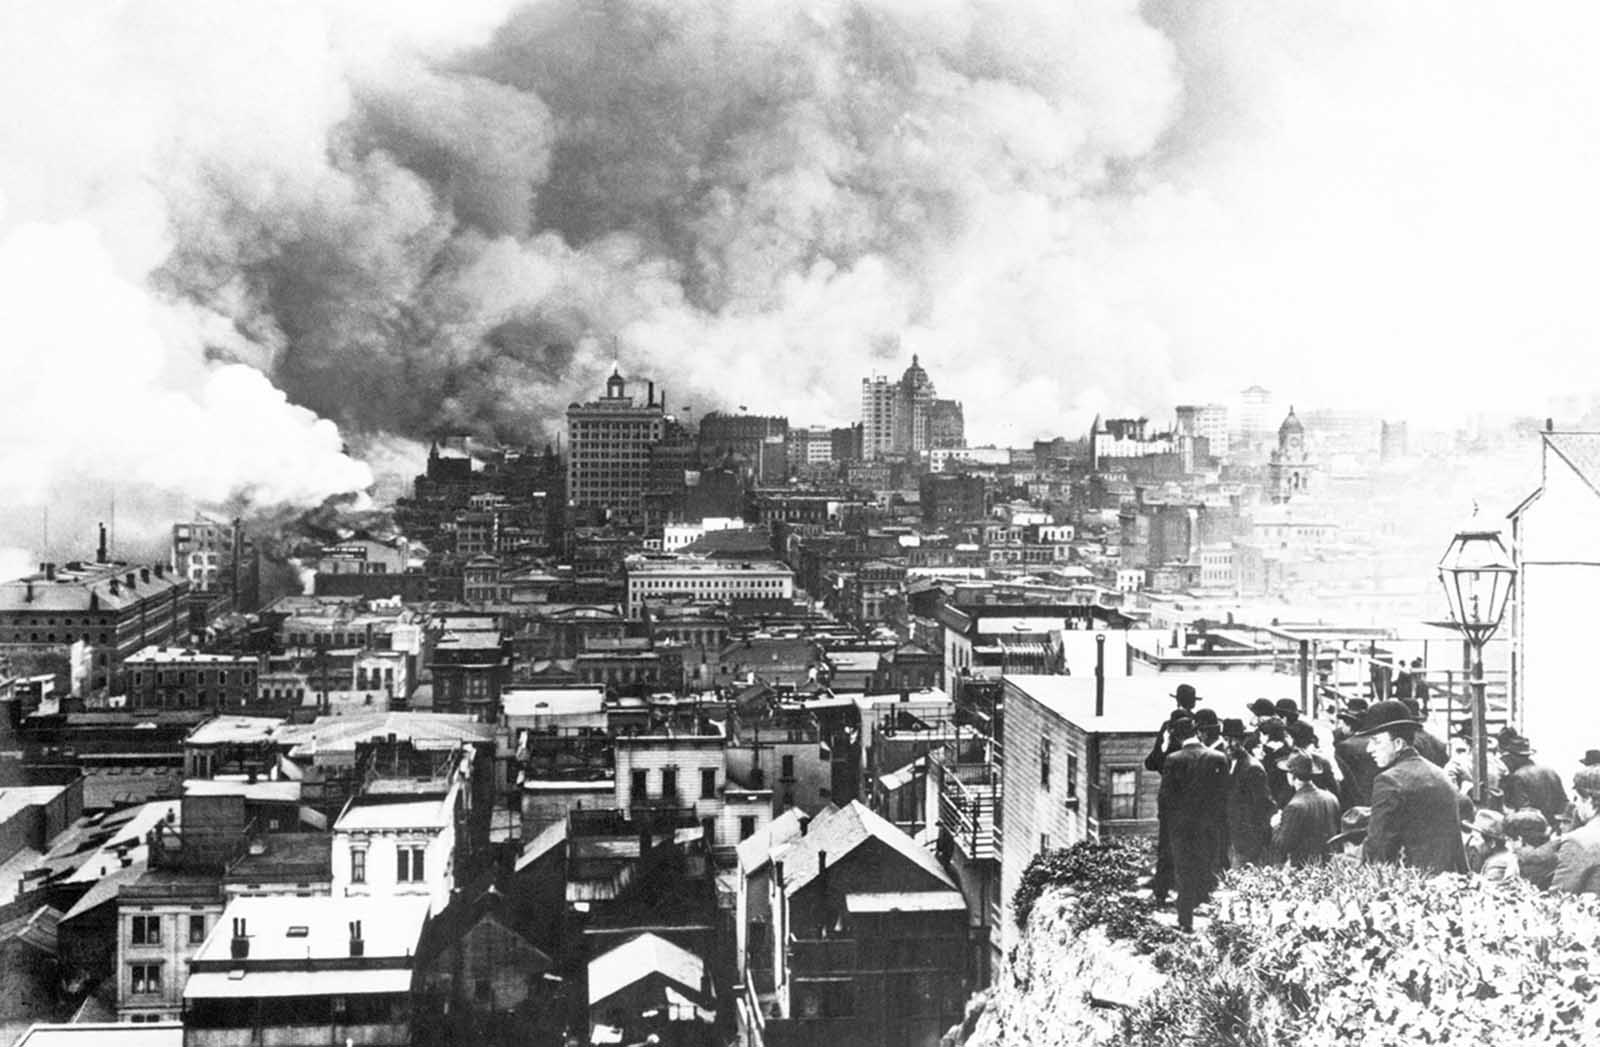 A crowd gathers on Telegraph Hill to watch the burning of San Francisco. The view is looking south.